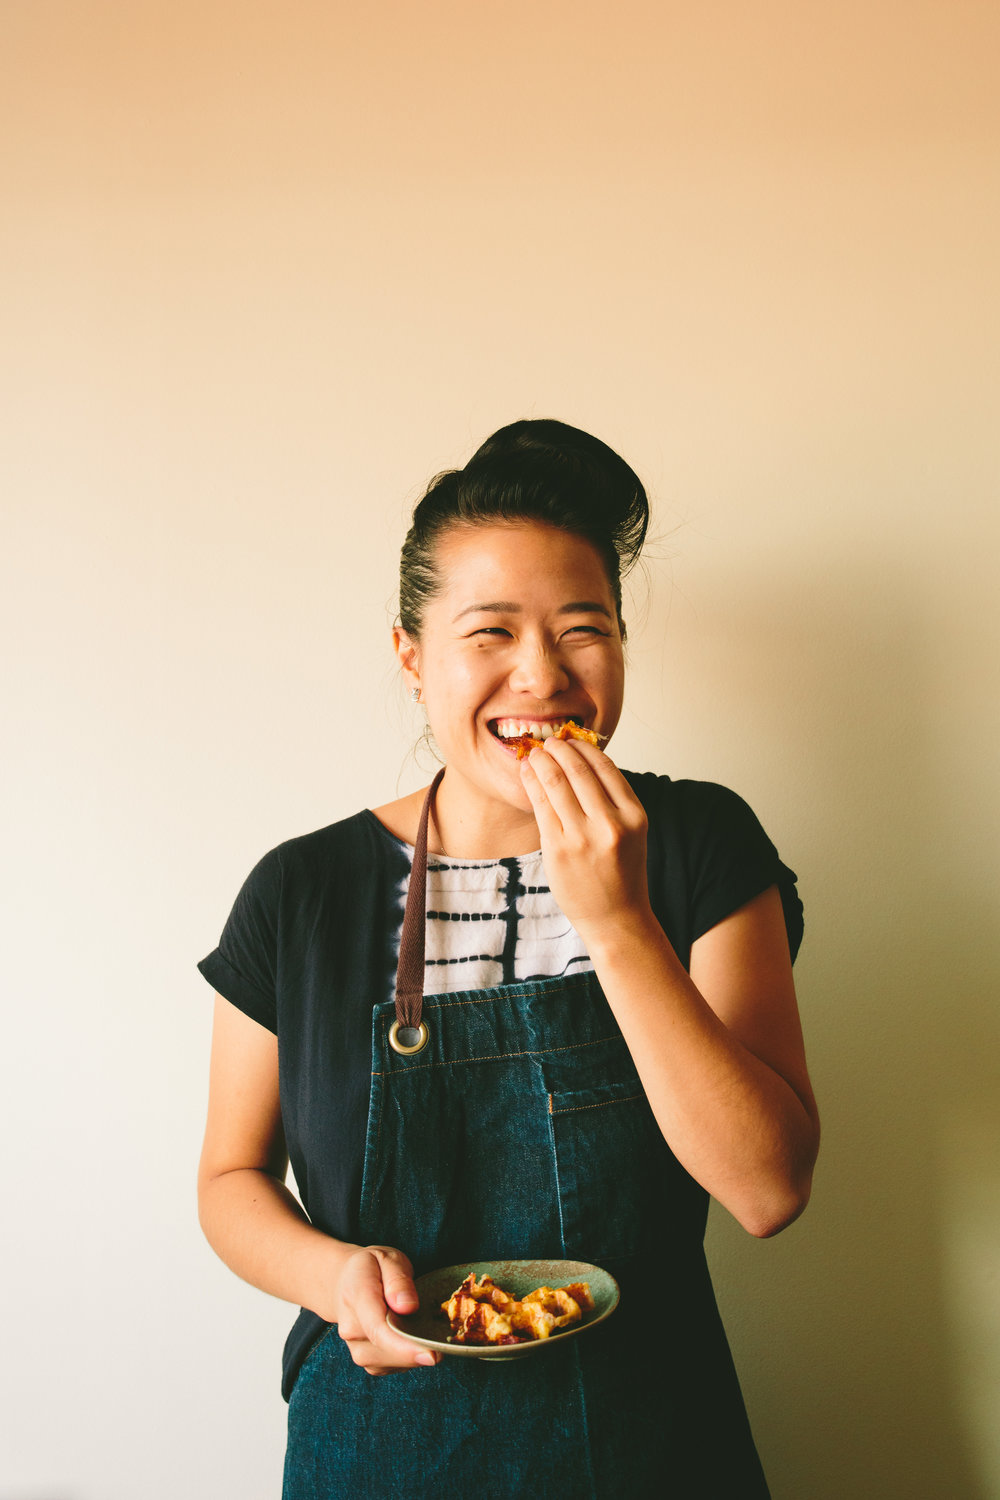 Tracy Chang - Chef at PAGU in Cambridge, MA - Photo by Brian Samuels of A Thought For Food